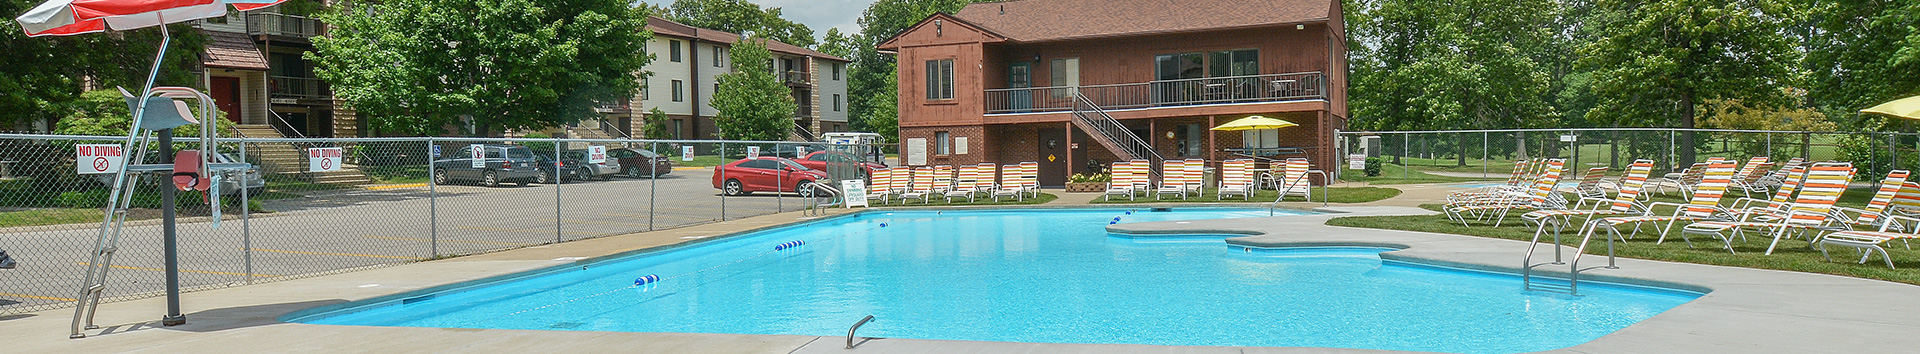 Swimming Pool of Country Club Apartments at Manor Communities, Huntington/West Virginia